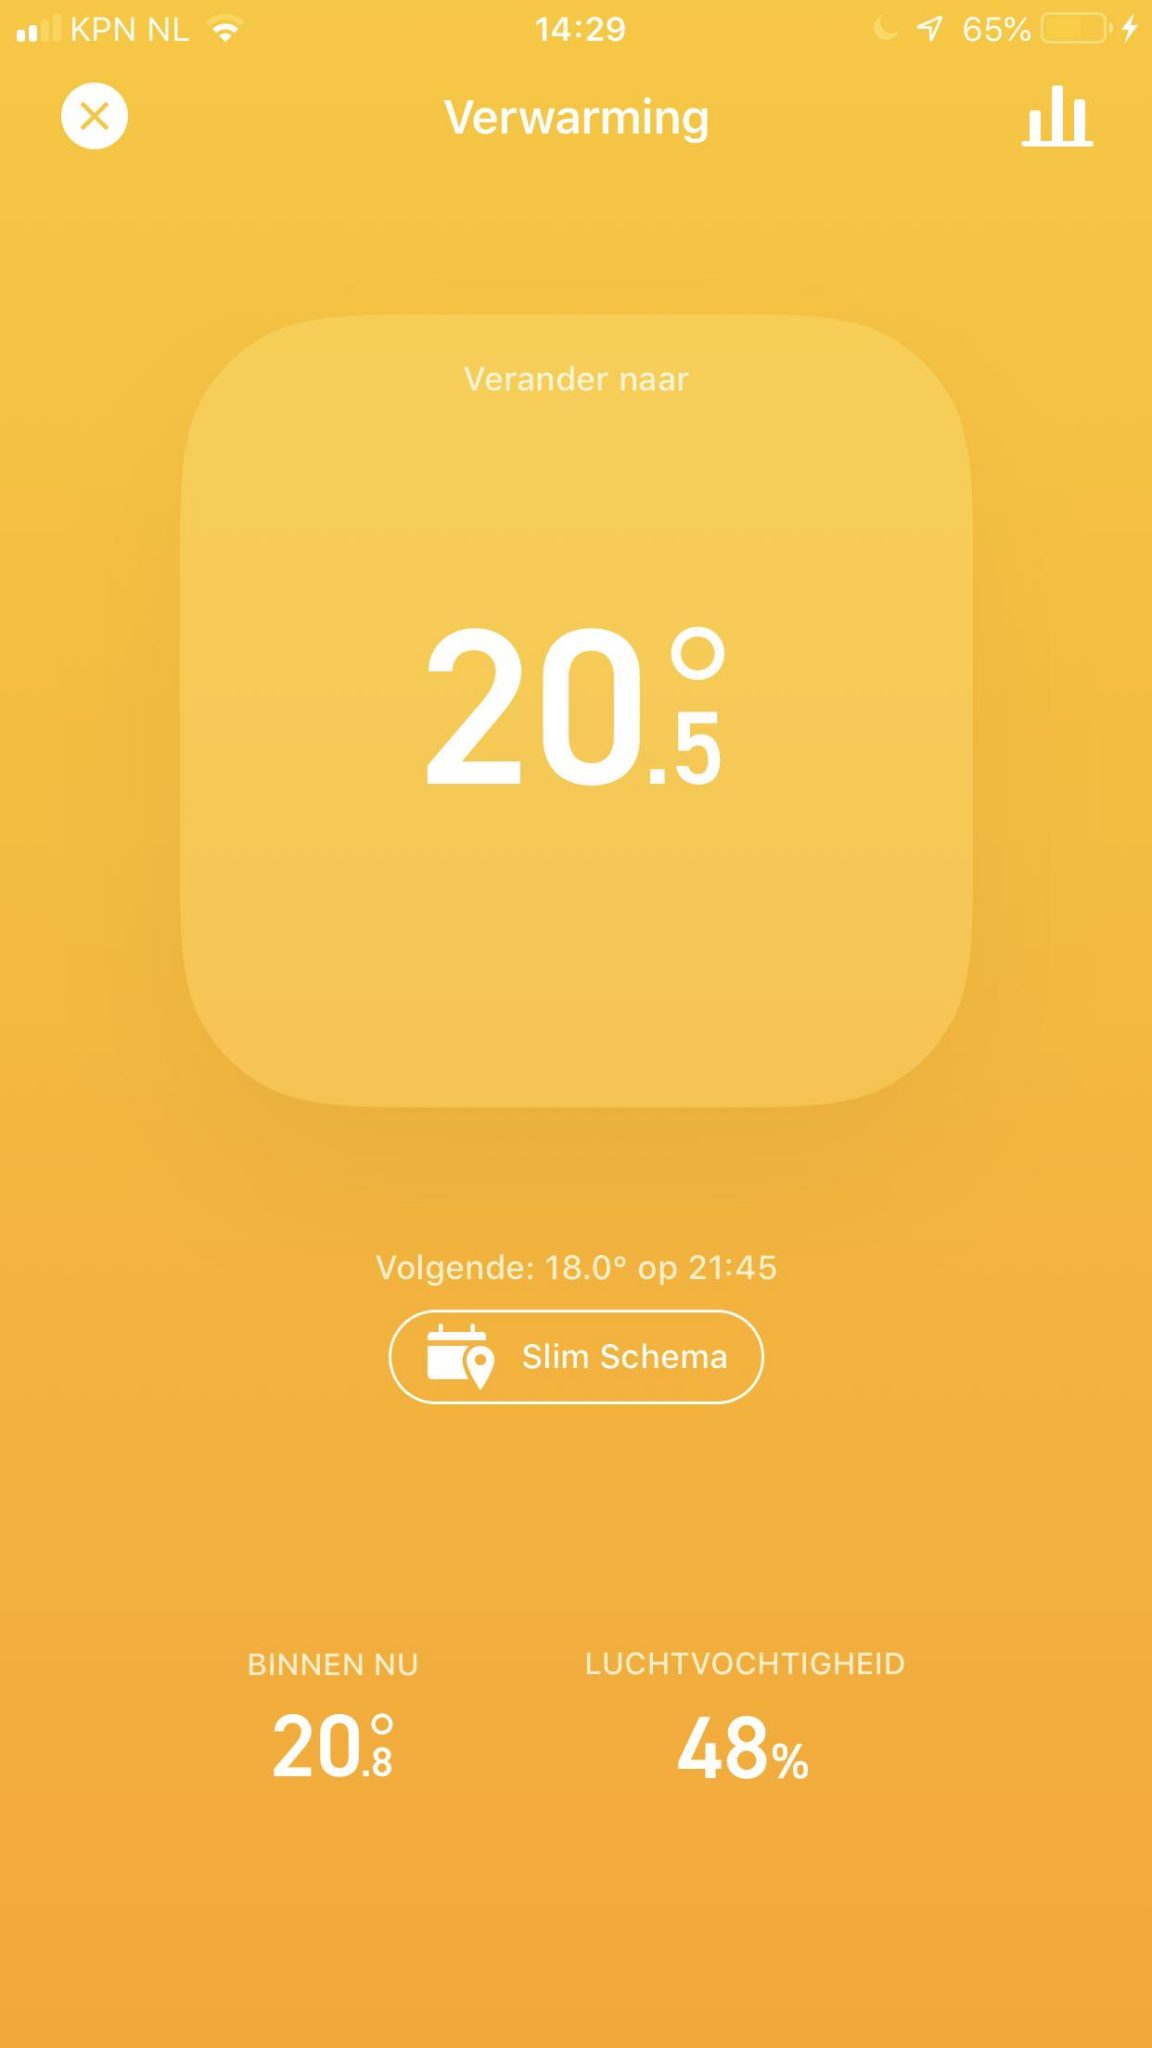 Tado Slimme Thermostaat Review: onze nieuwe slimme thermostaat!